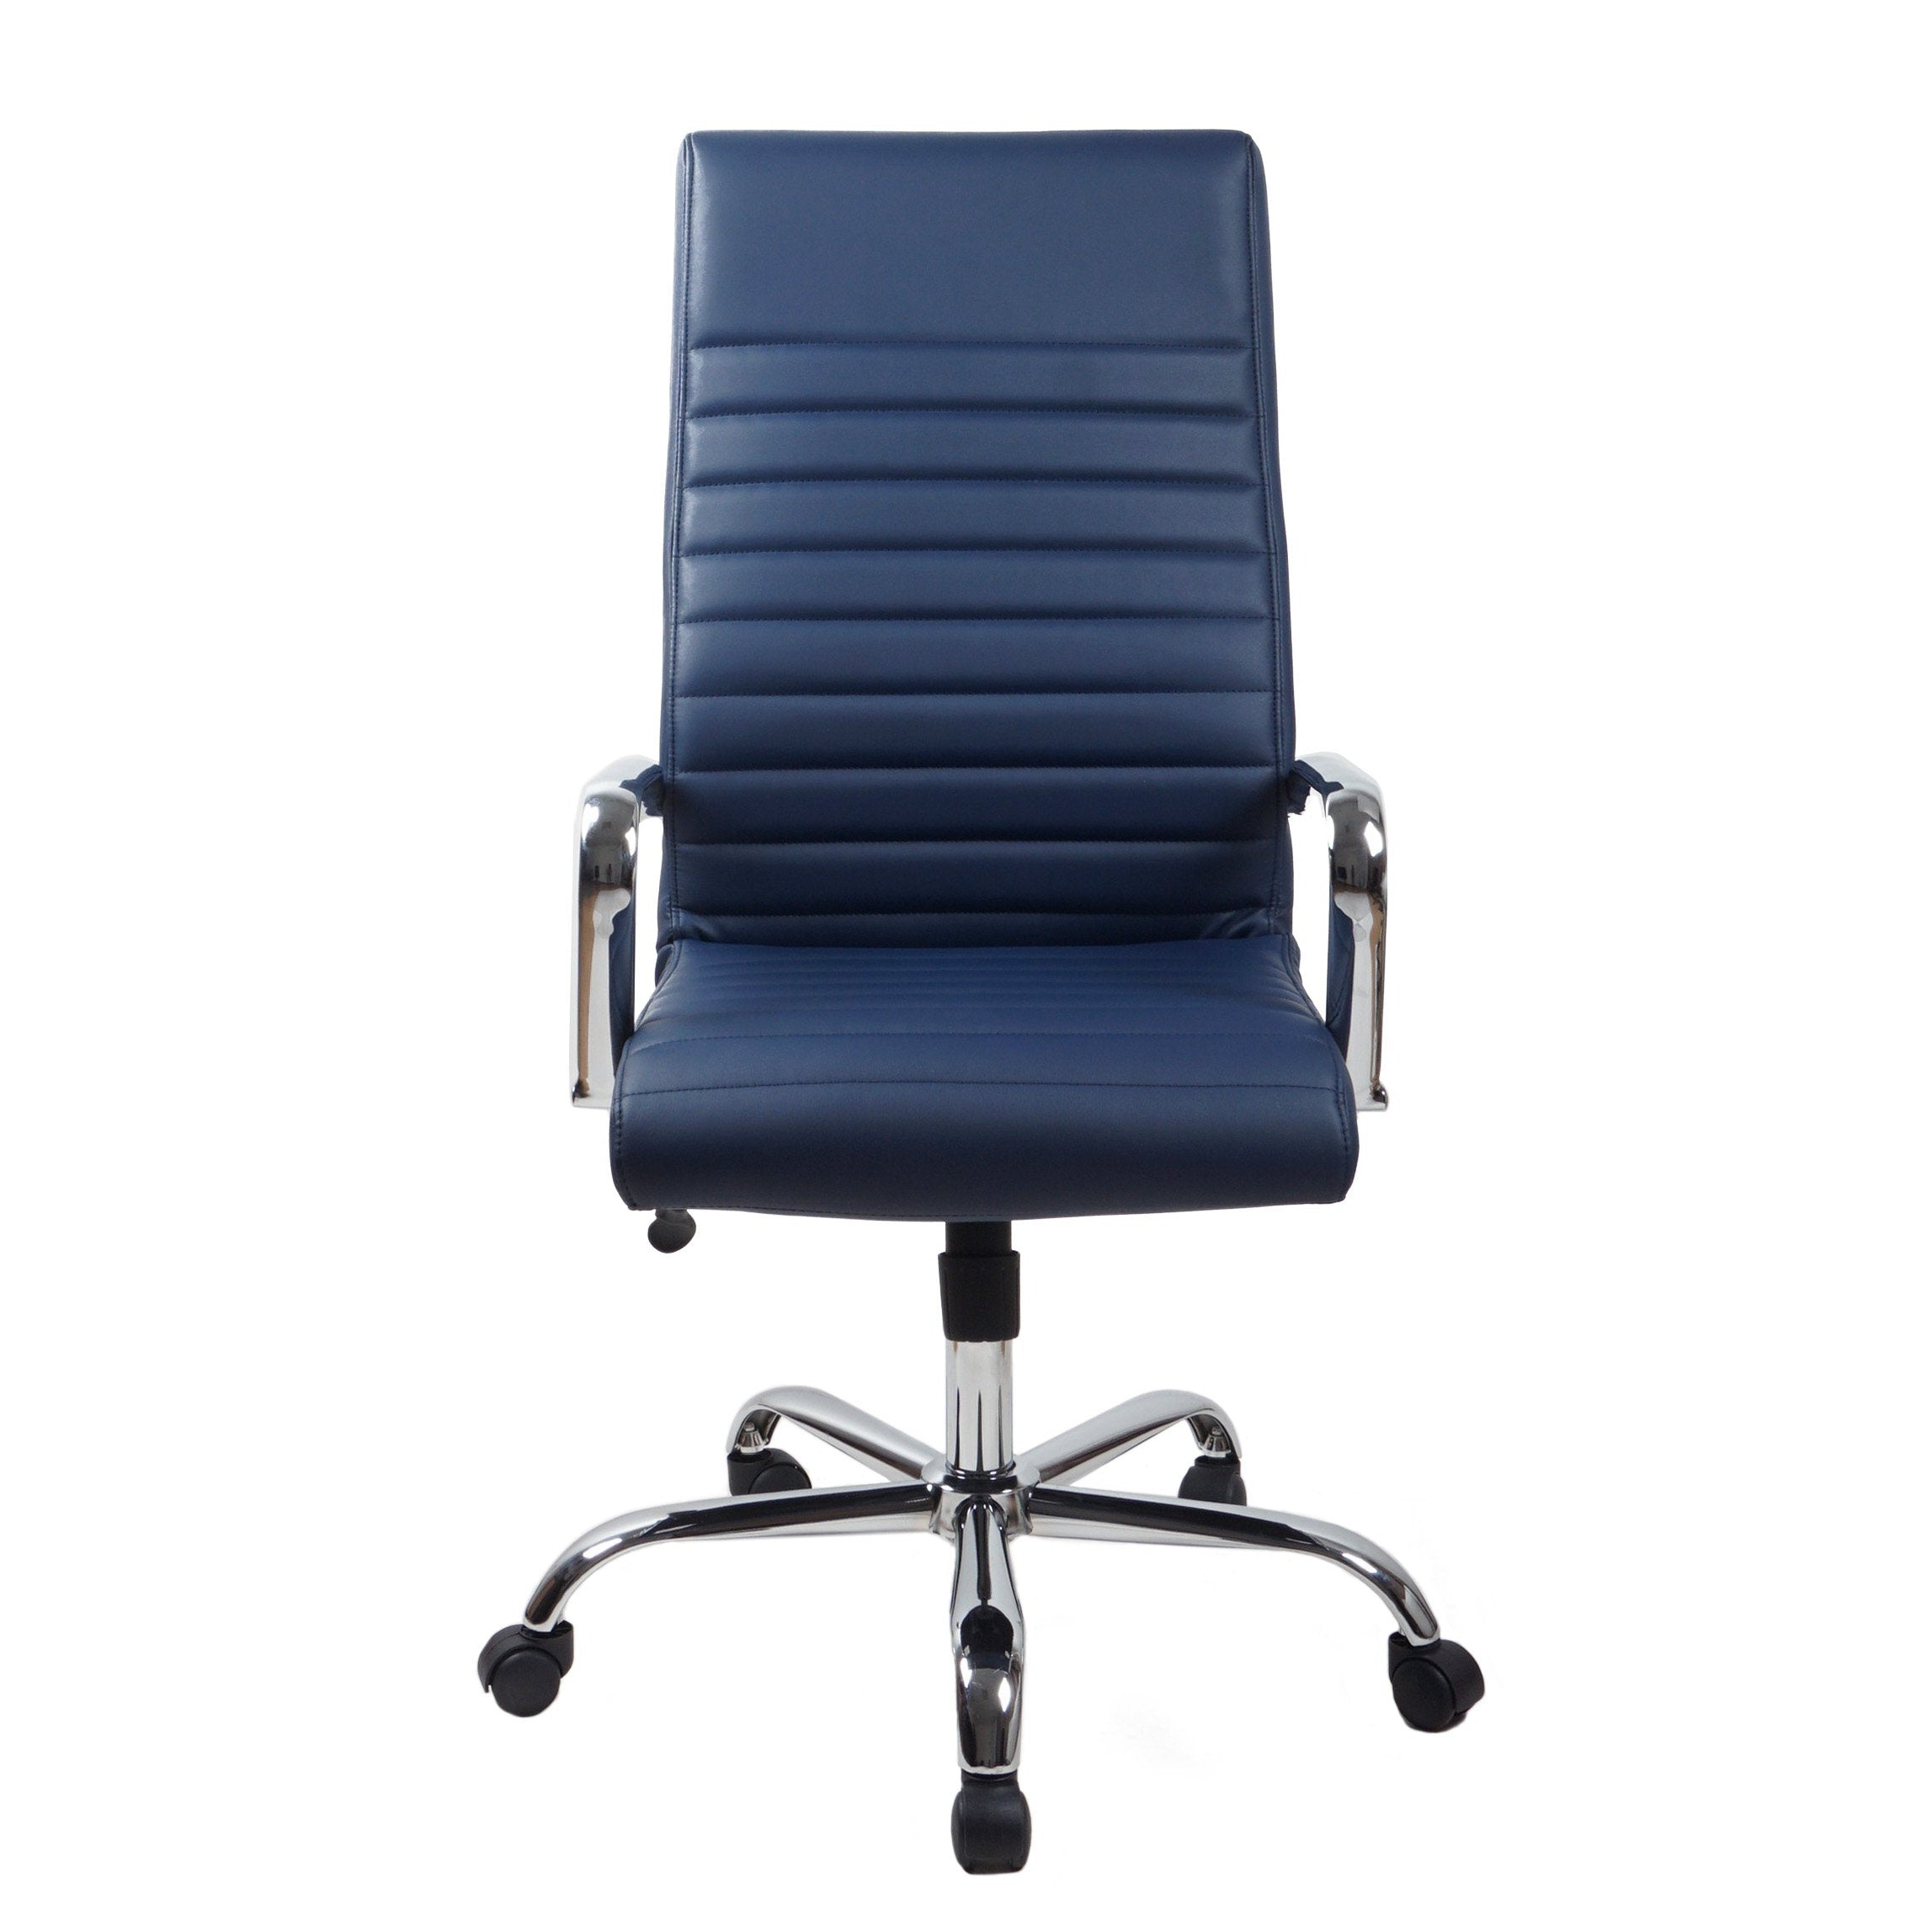 RealBiz II Modern Comfort Series High-Back LeatherPro Chair, Midnight Blue